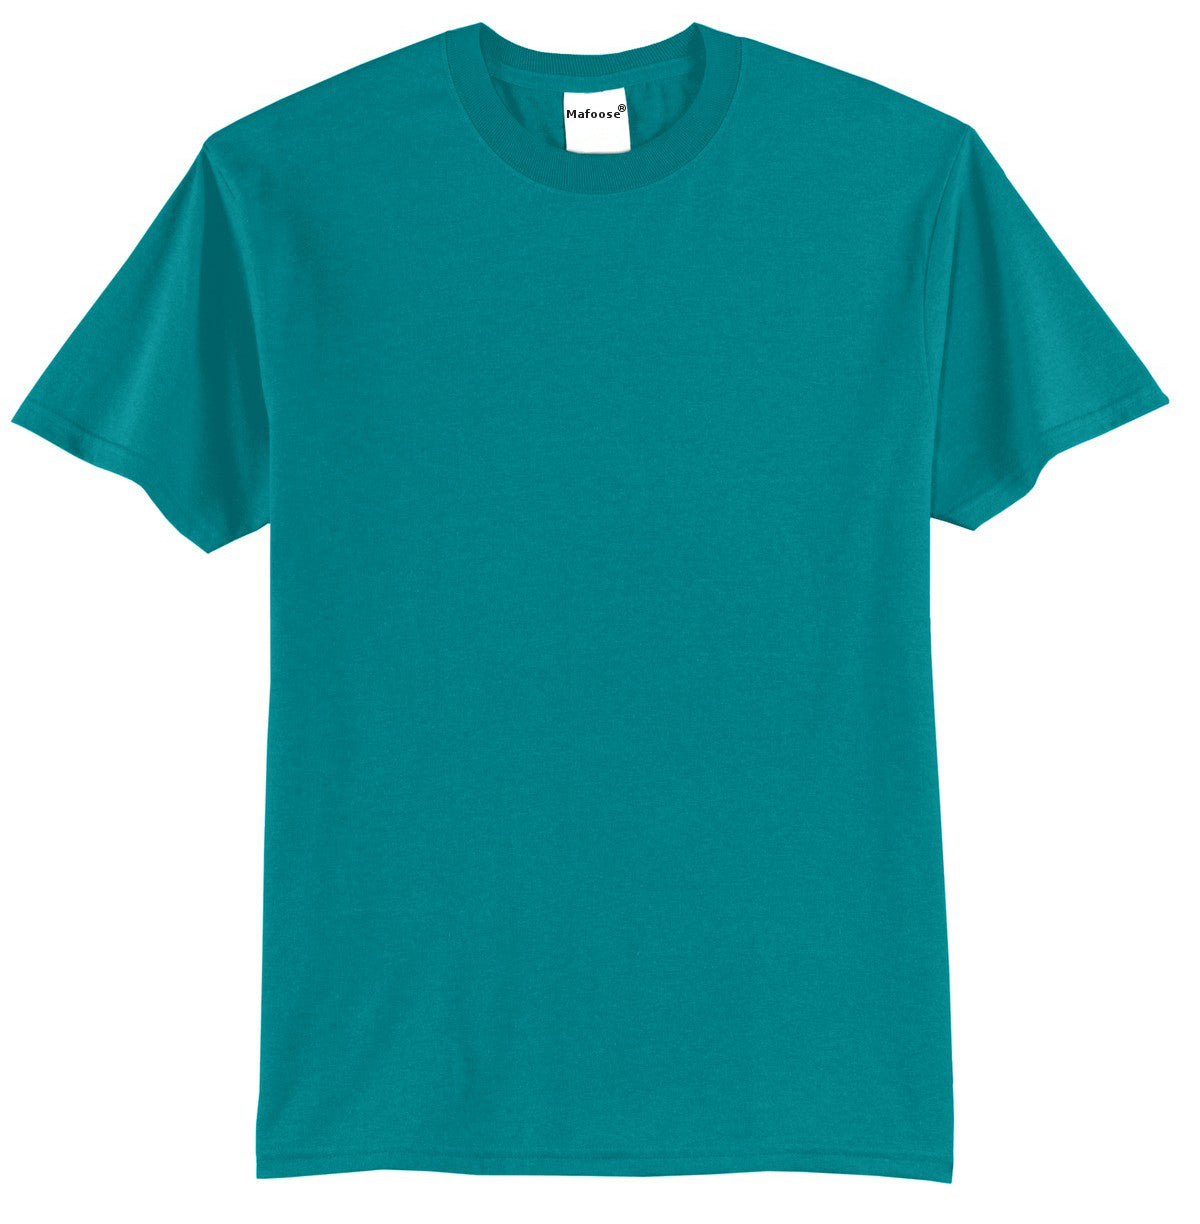 Mafoose Men's Core Blend Tee Shirt Jade Green